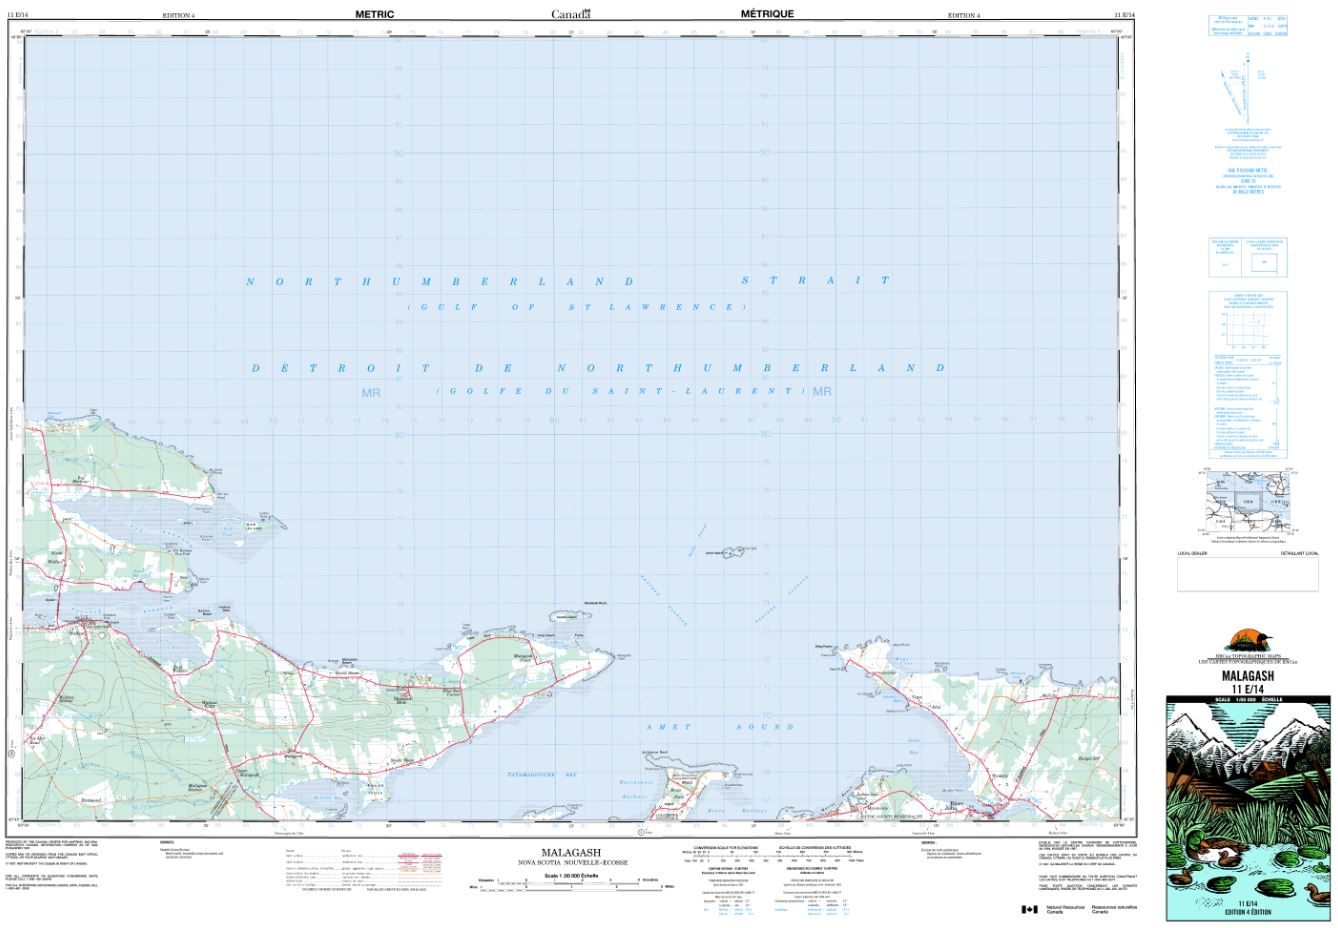 11E/14 Malagash Topographic Map Nova Scotia